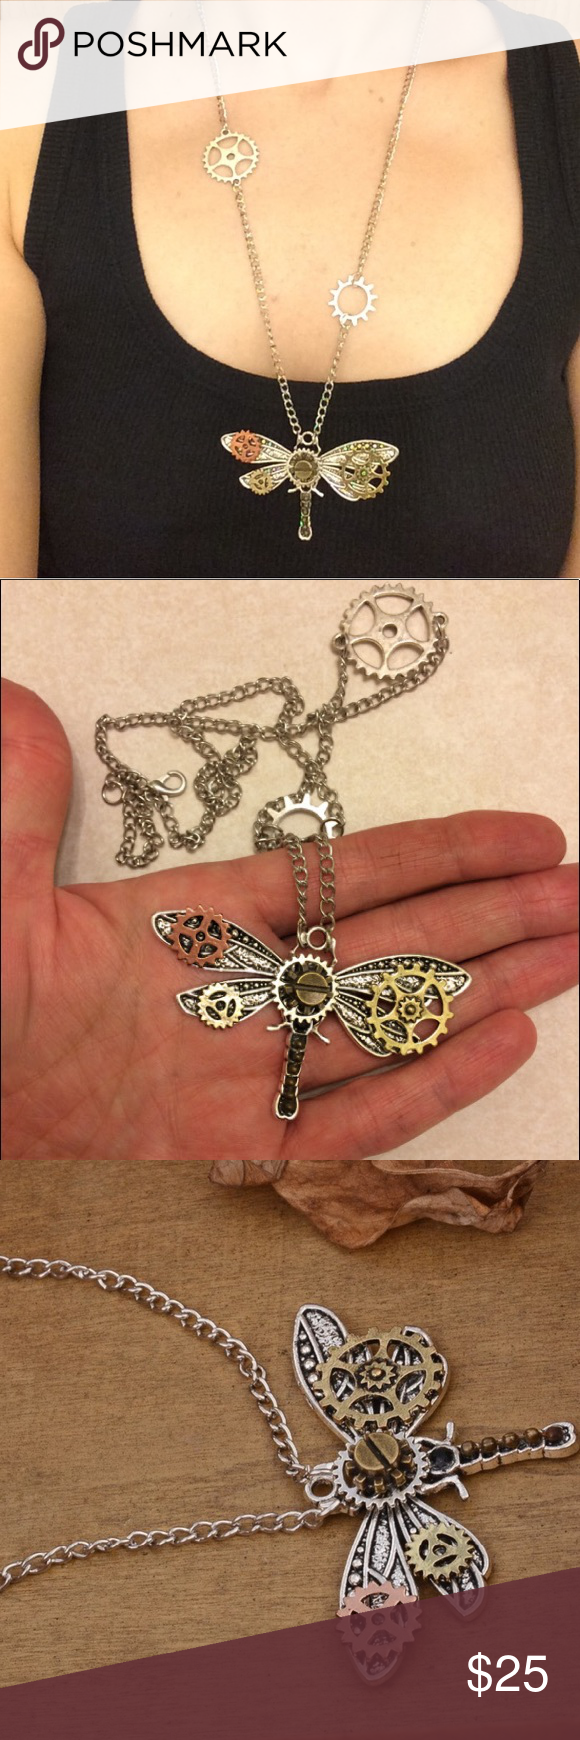 NEW Necklace Steampunk Butterfly Gears Jewelry NEW Necklace! Steampunk chic a long mechanical gears